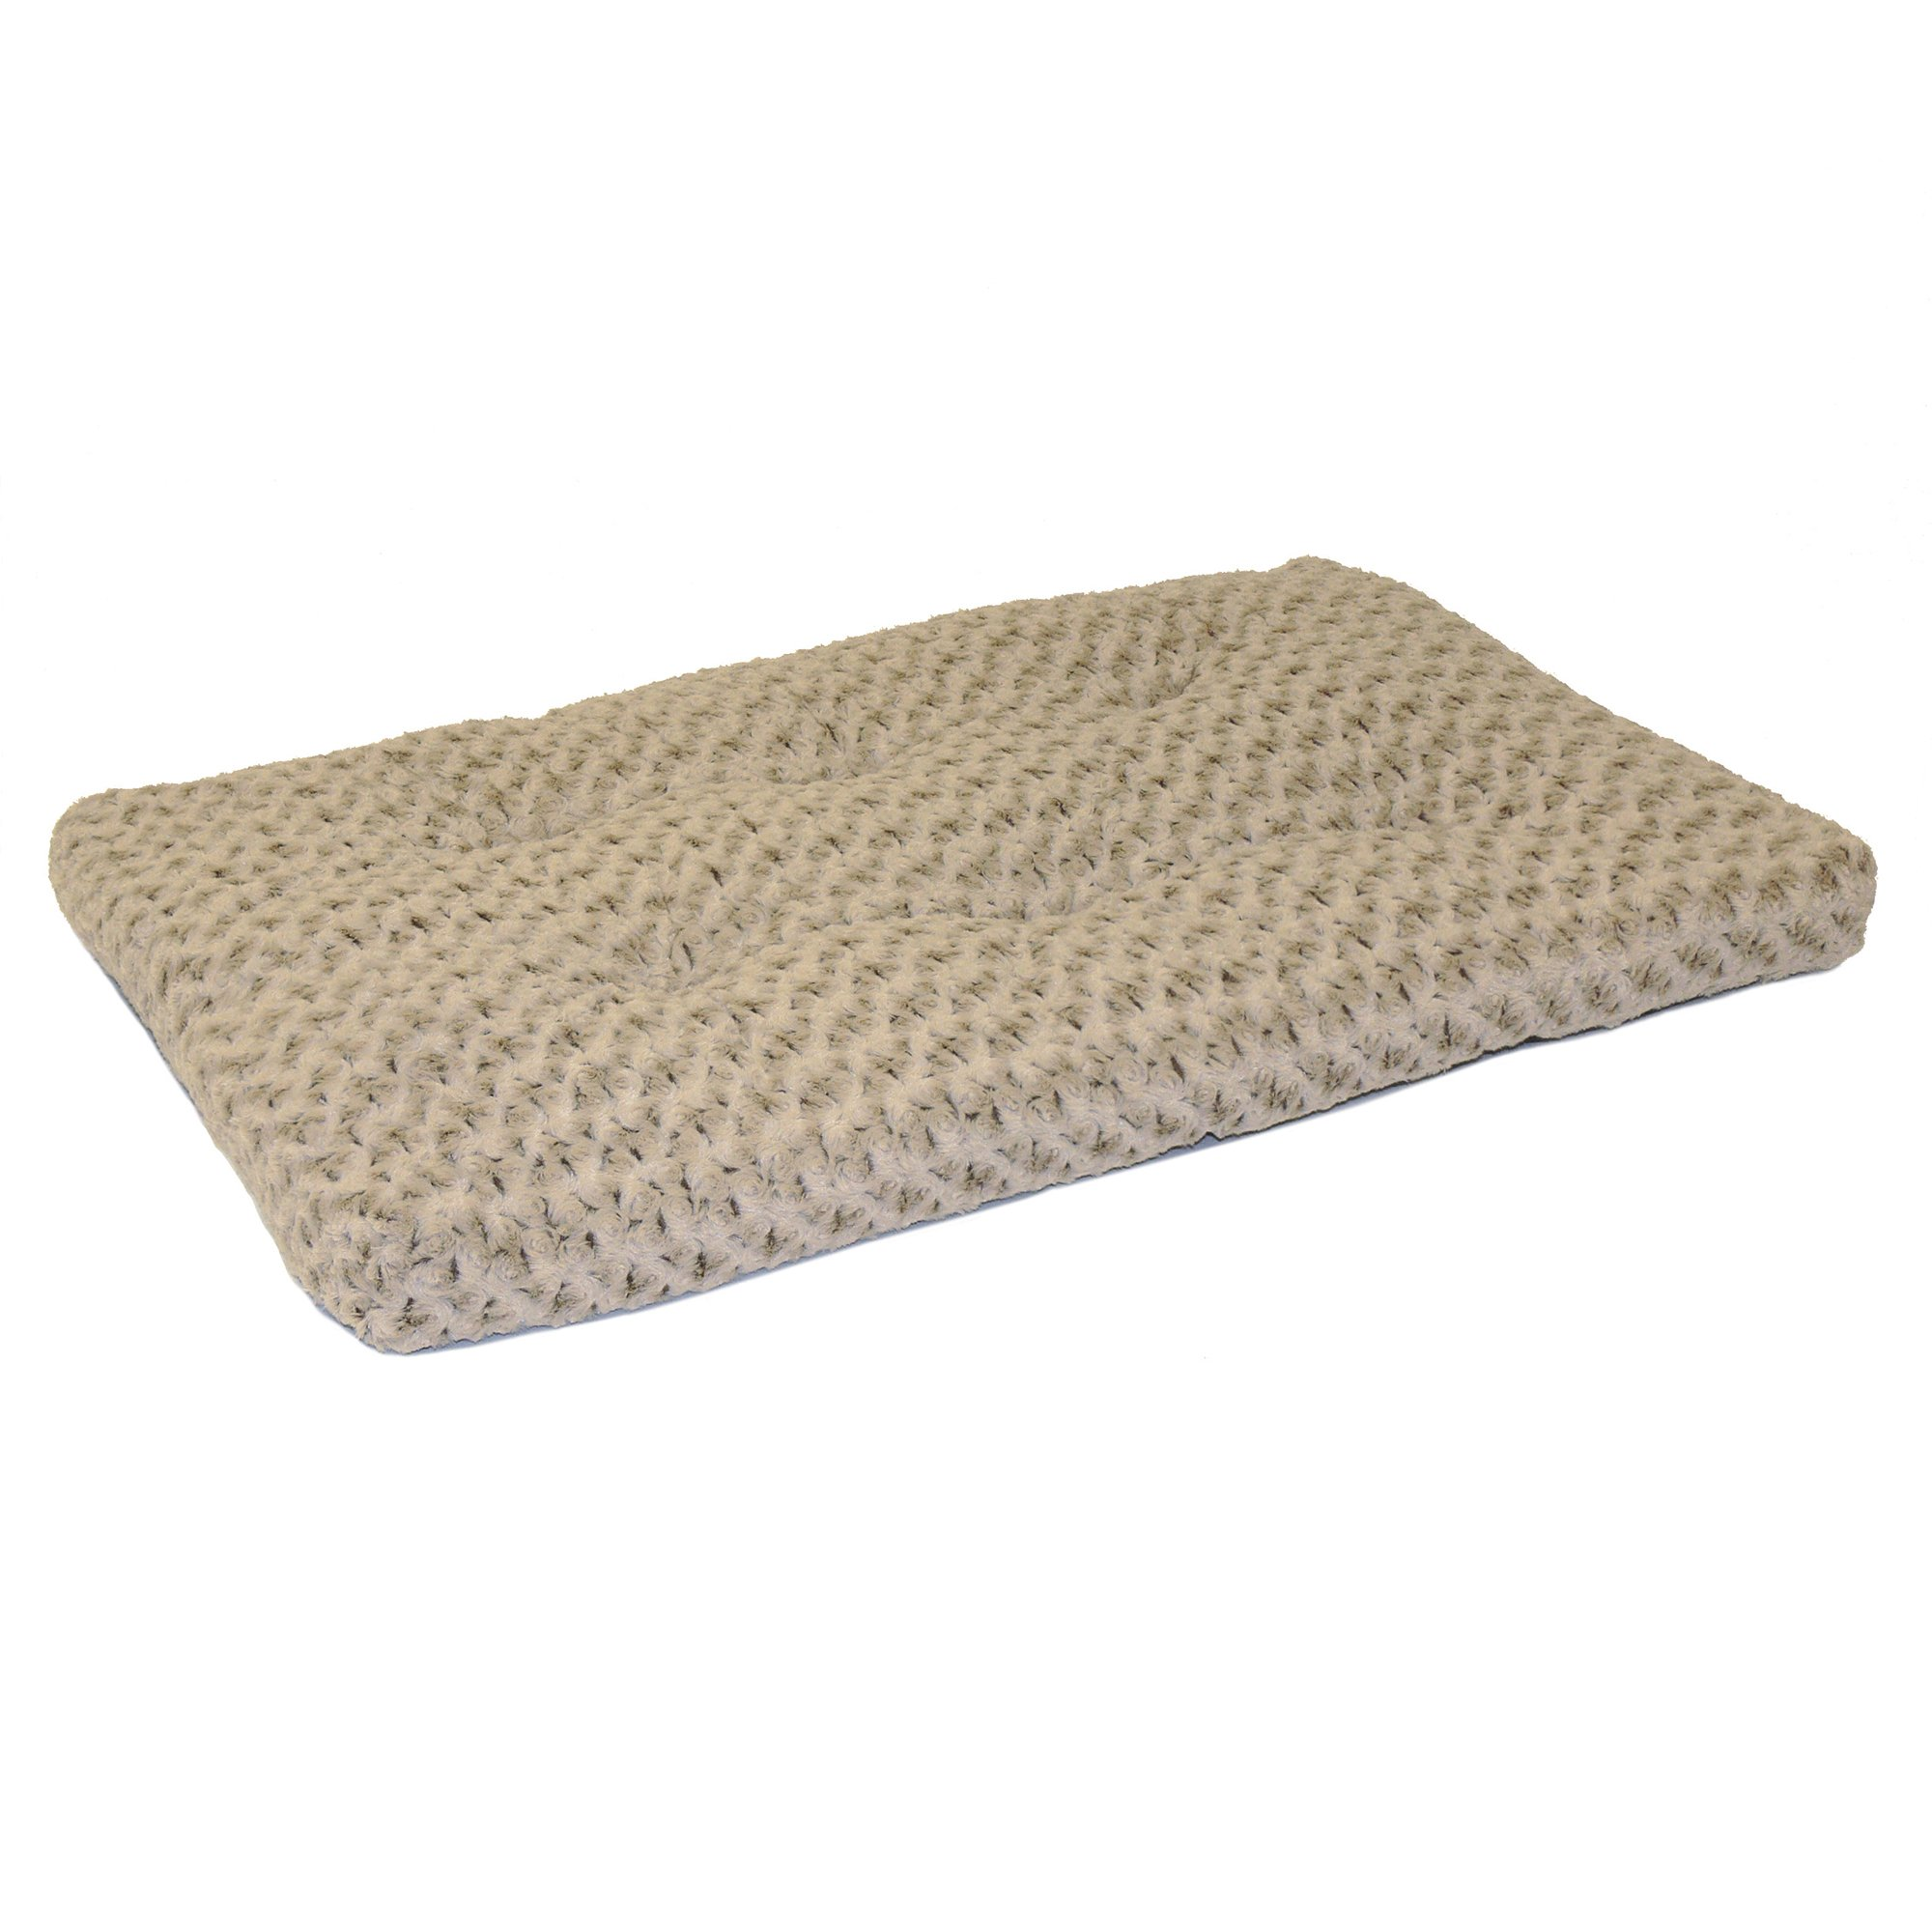 MidWest Quiet Time Pet Bed Deluxe Mocha Ombre Swirl 46'' x 29''